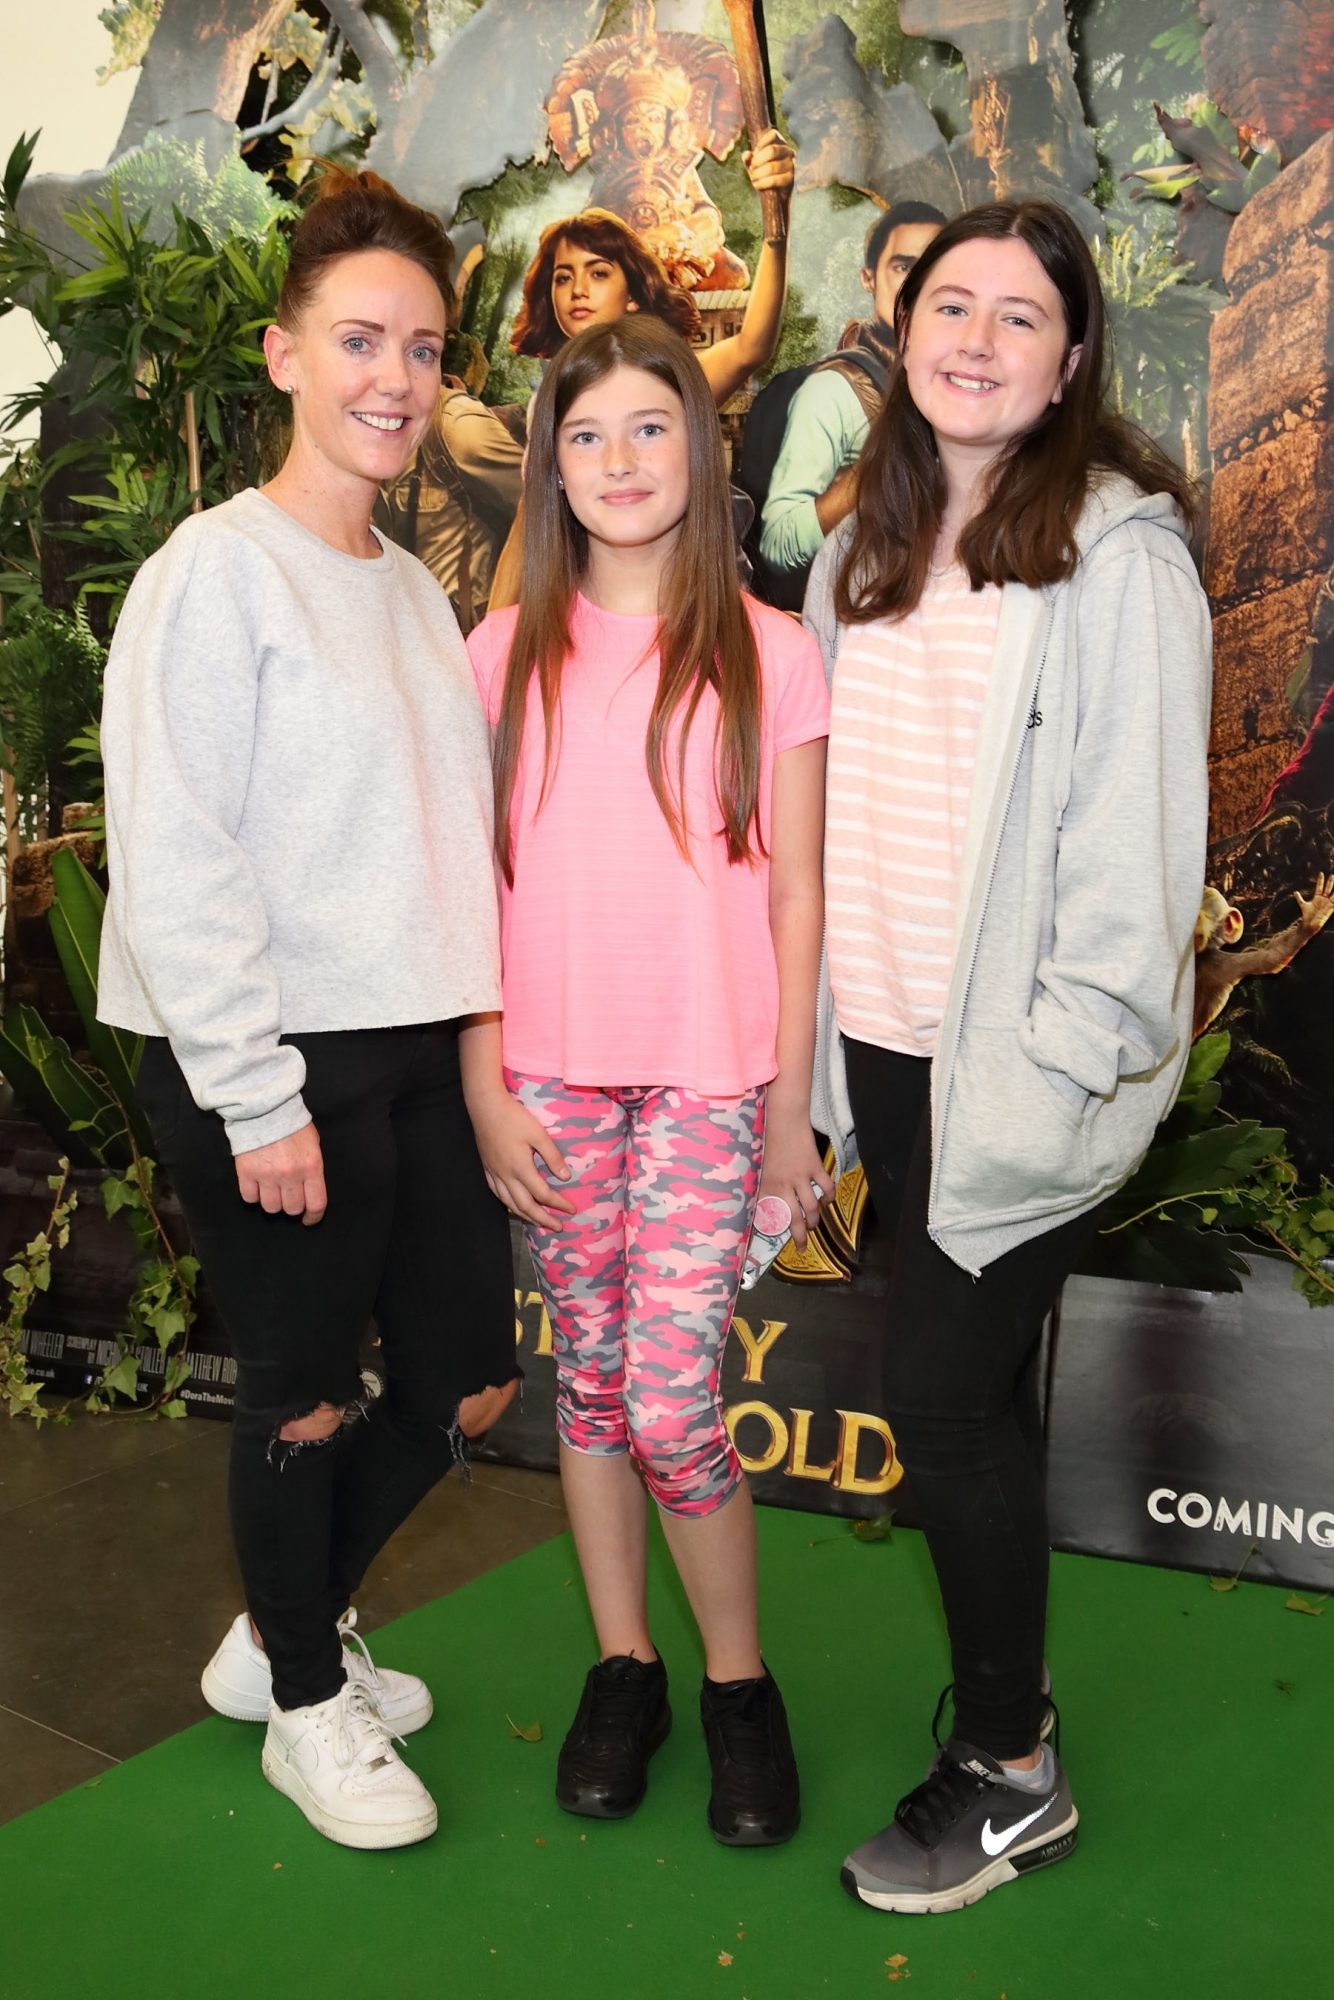 Orla Maguire, Summer Geoghegan and Toni O'Rourke at the special preview screening of Dora and the Lost City of Gold at the Odeon Cinema in Point Square,Dublin. Pic Brian McEvoy Photography